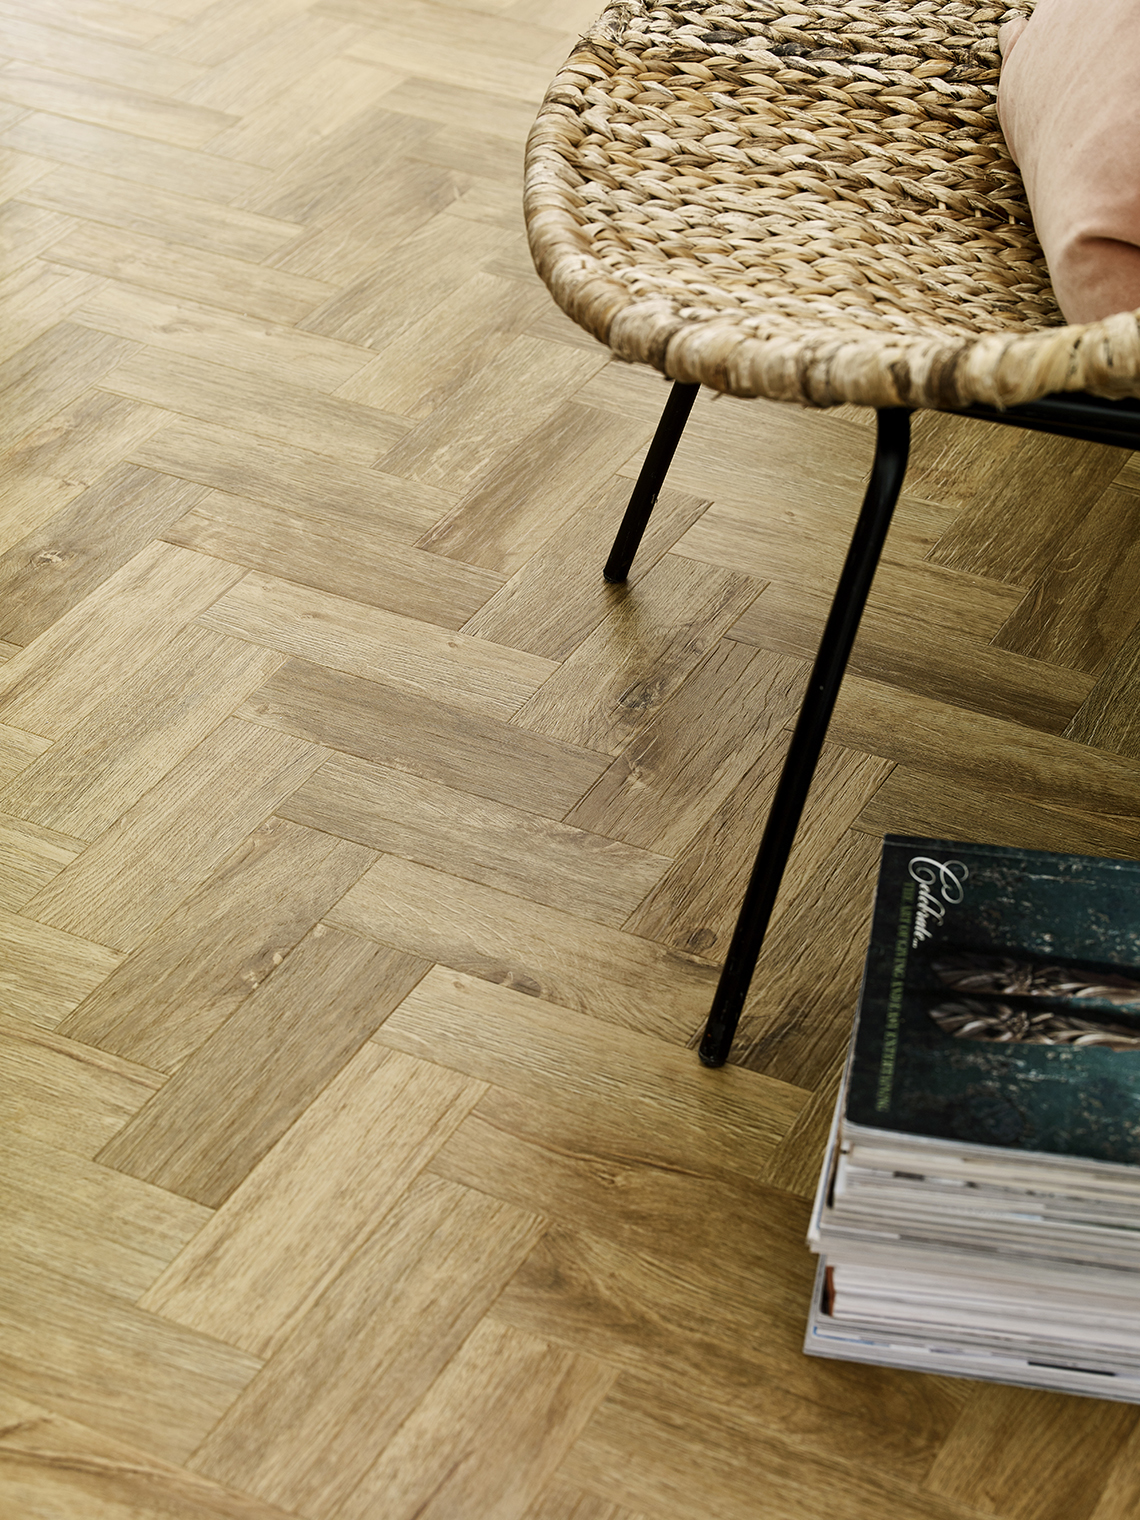 rural oak in parquet laying pattern cameo the carpet. Black Bedroom Furniture Sets. Home Design Ideas